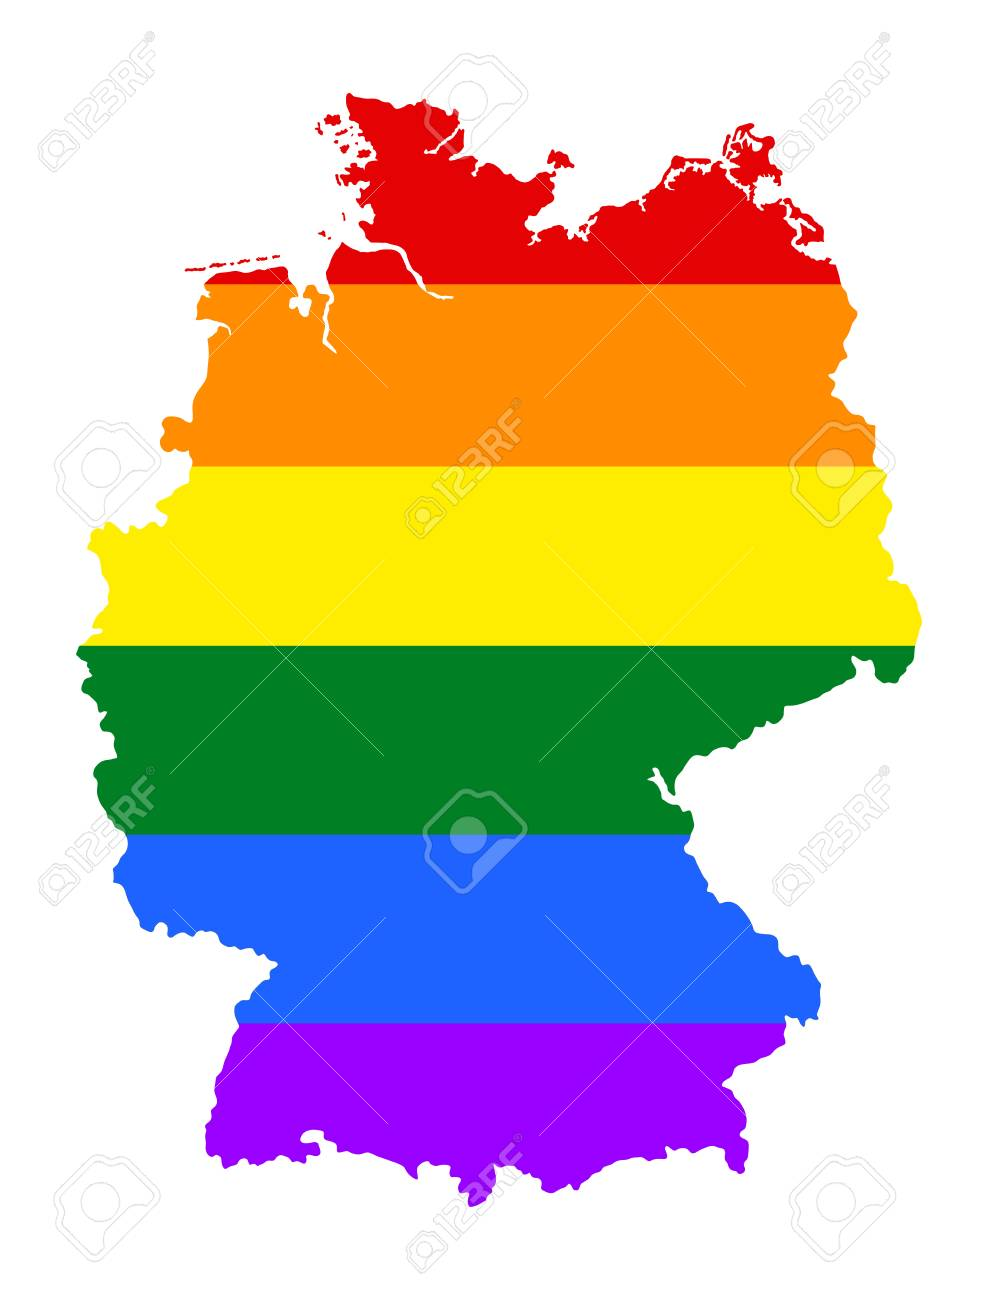 Map Of Germany Over The Years.Germany Pride Gay Map With Rainbow Flag Colors Gay Flag Over